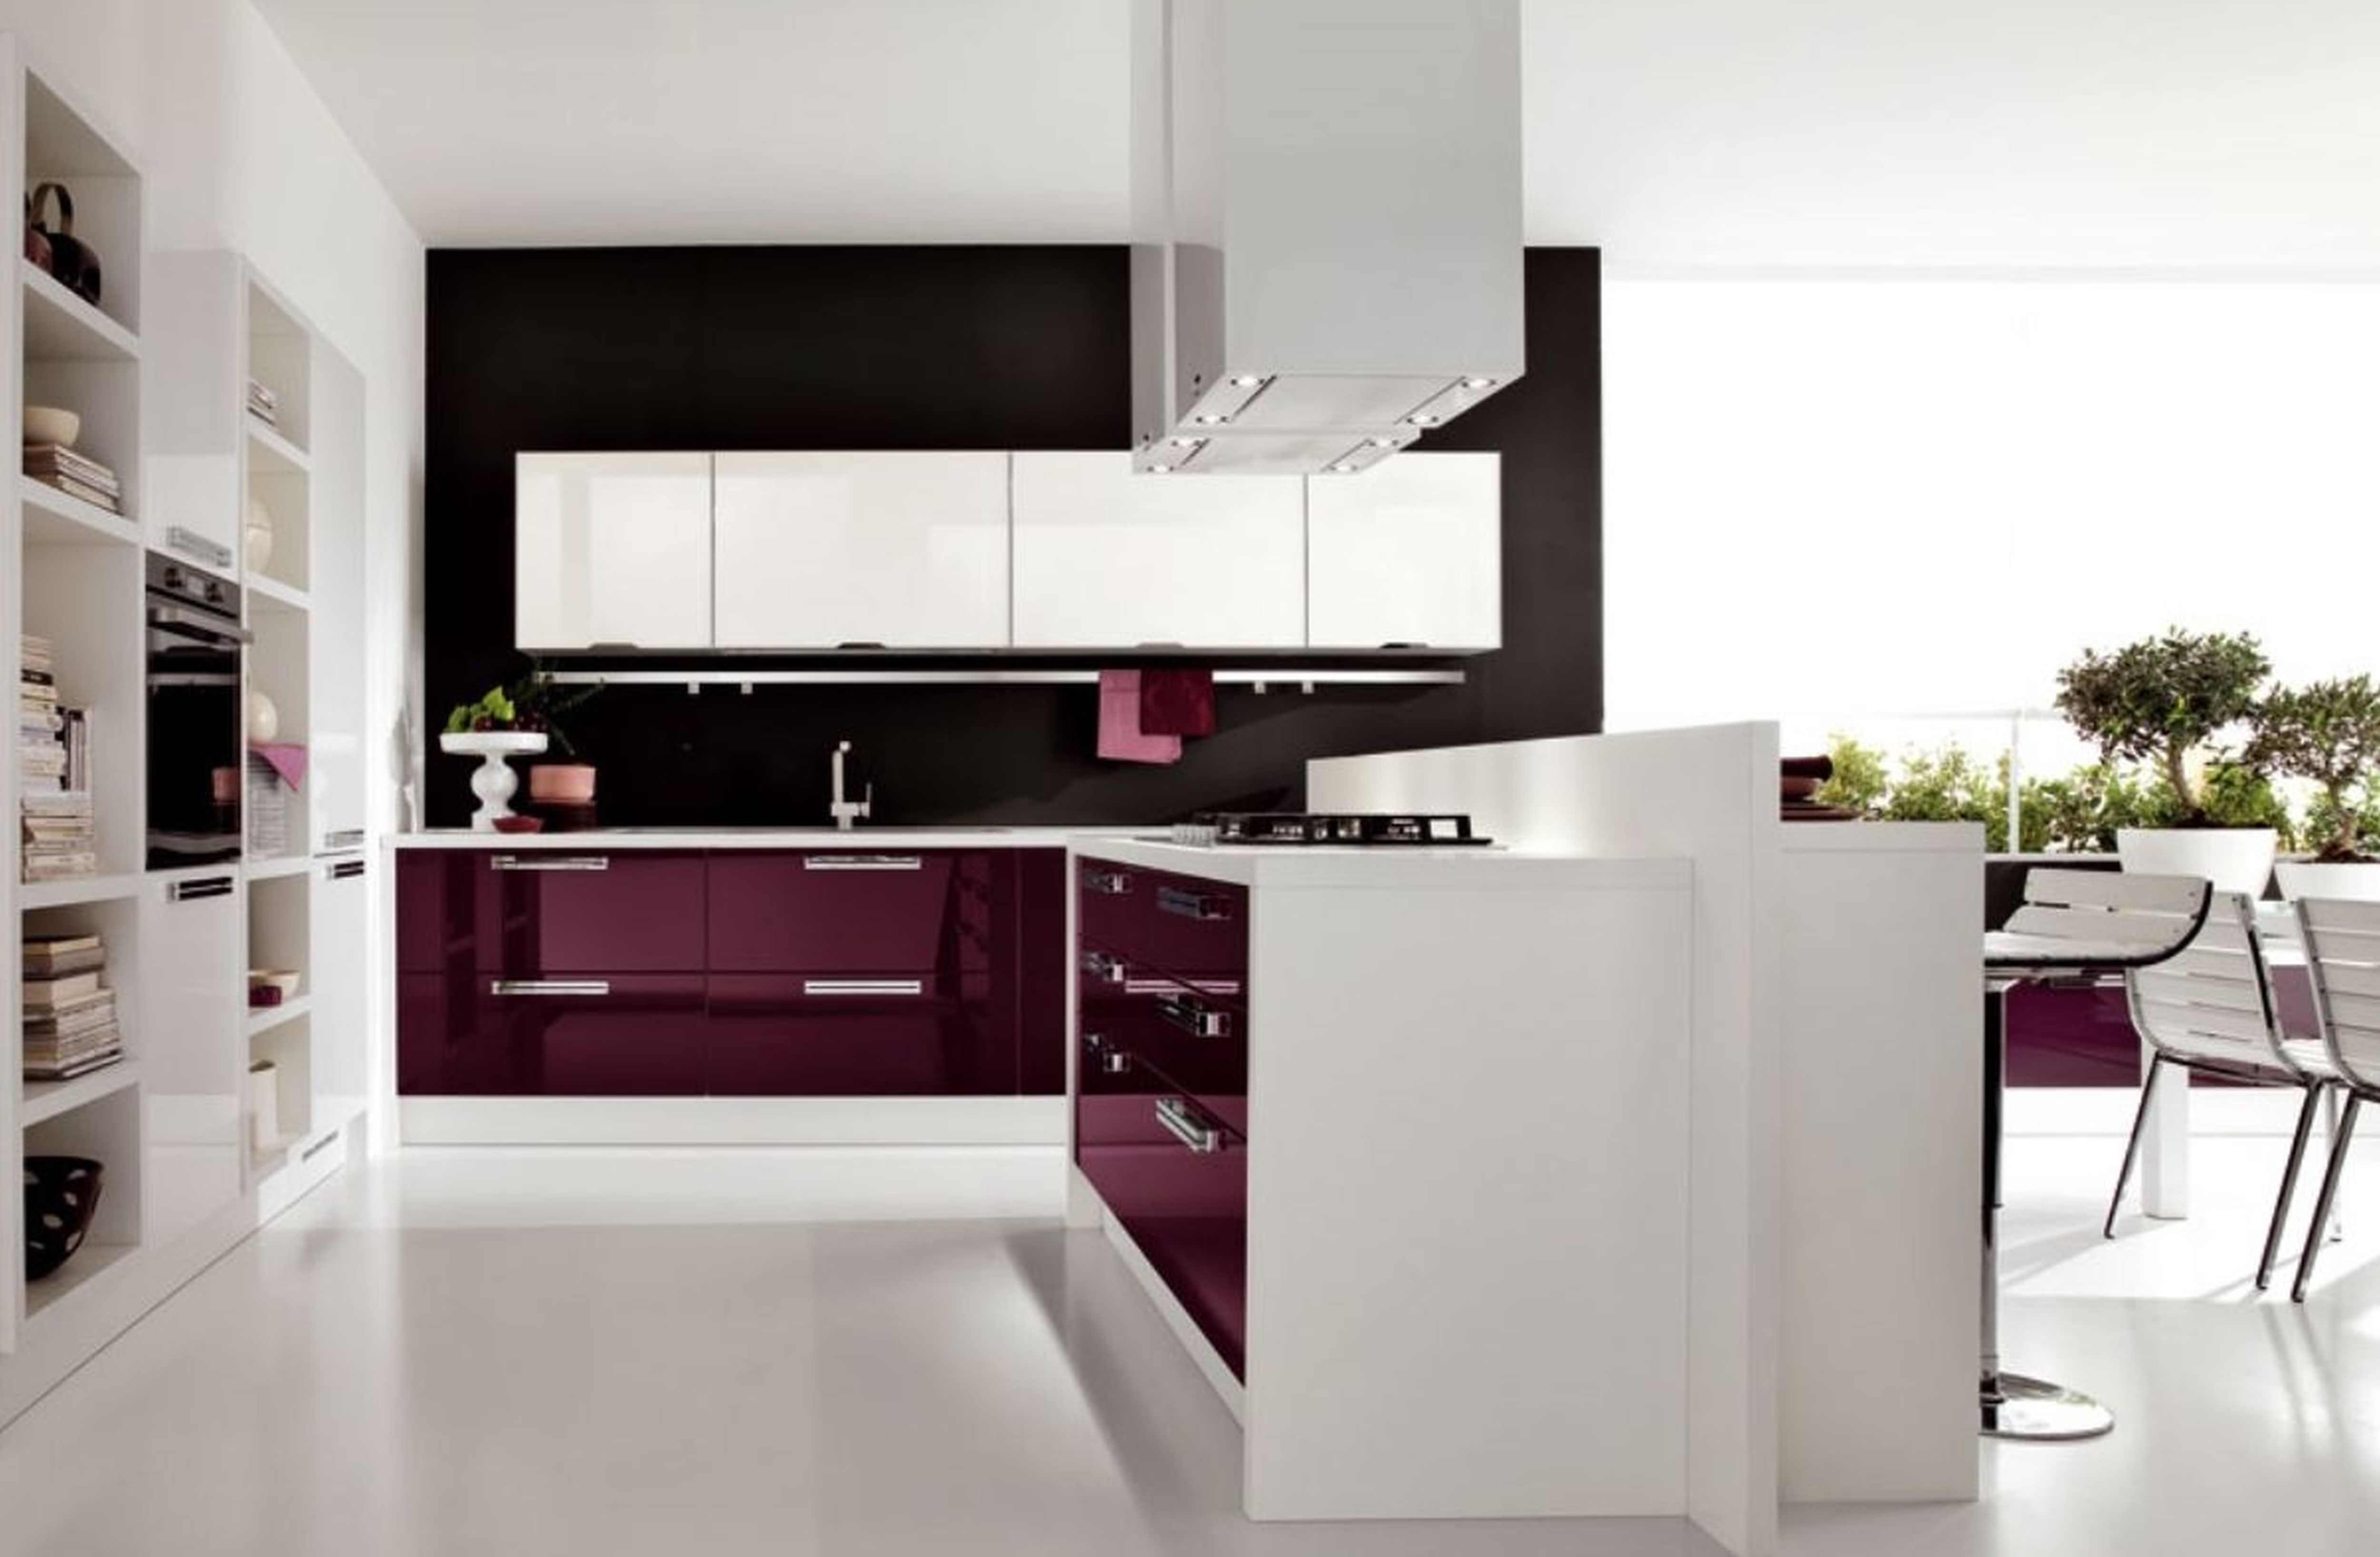 Interior design images good modern kitchen design gallery for New kitchen gallery